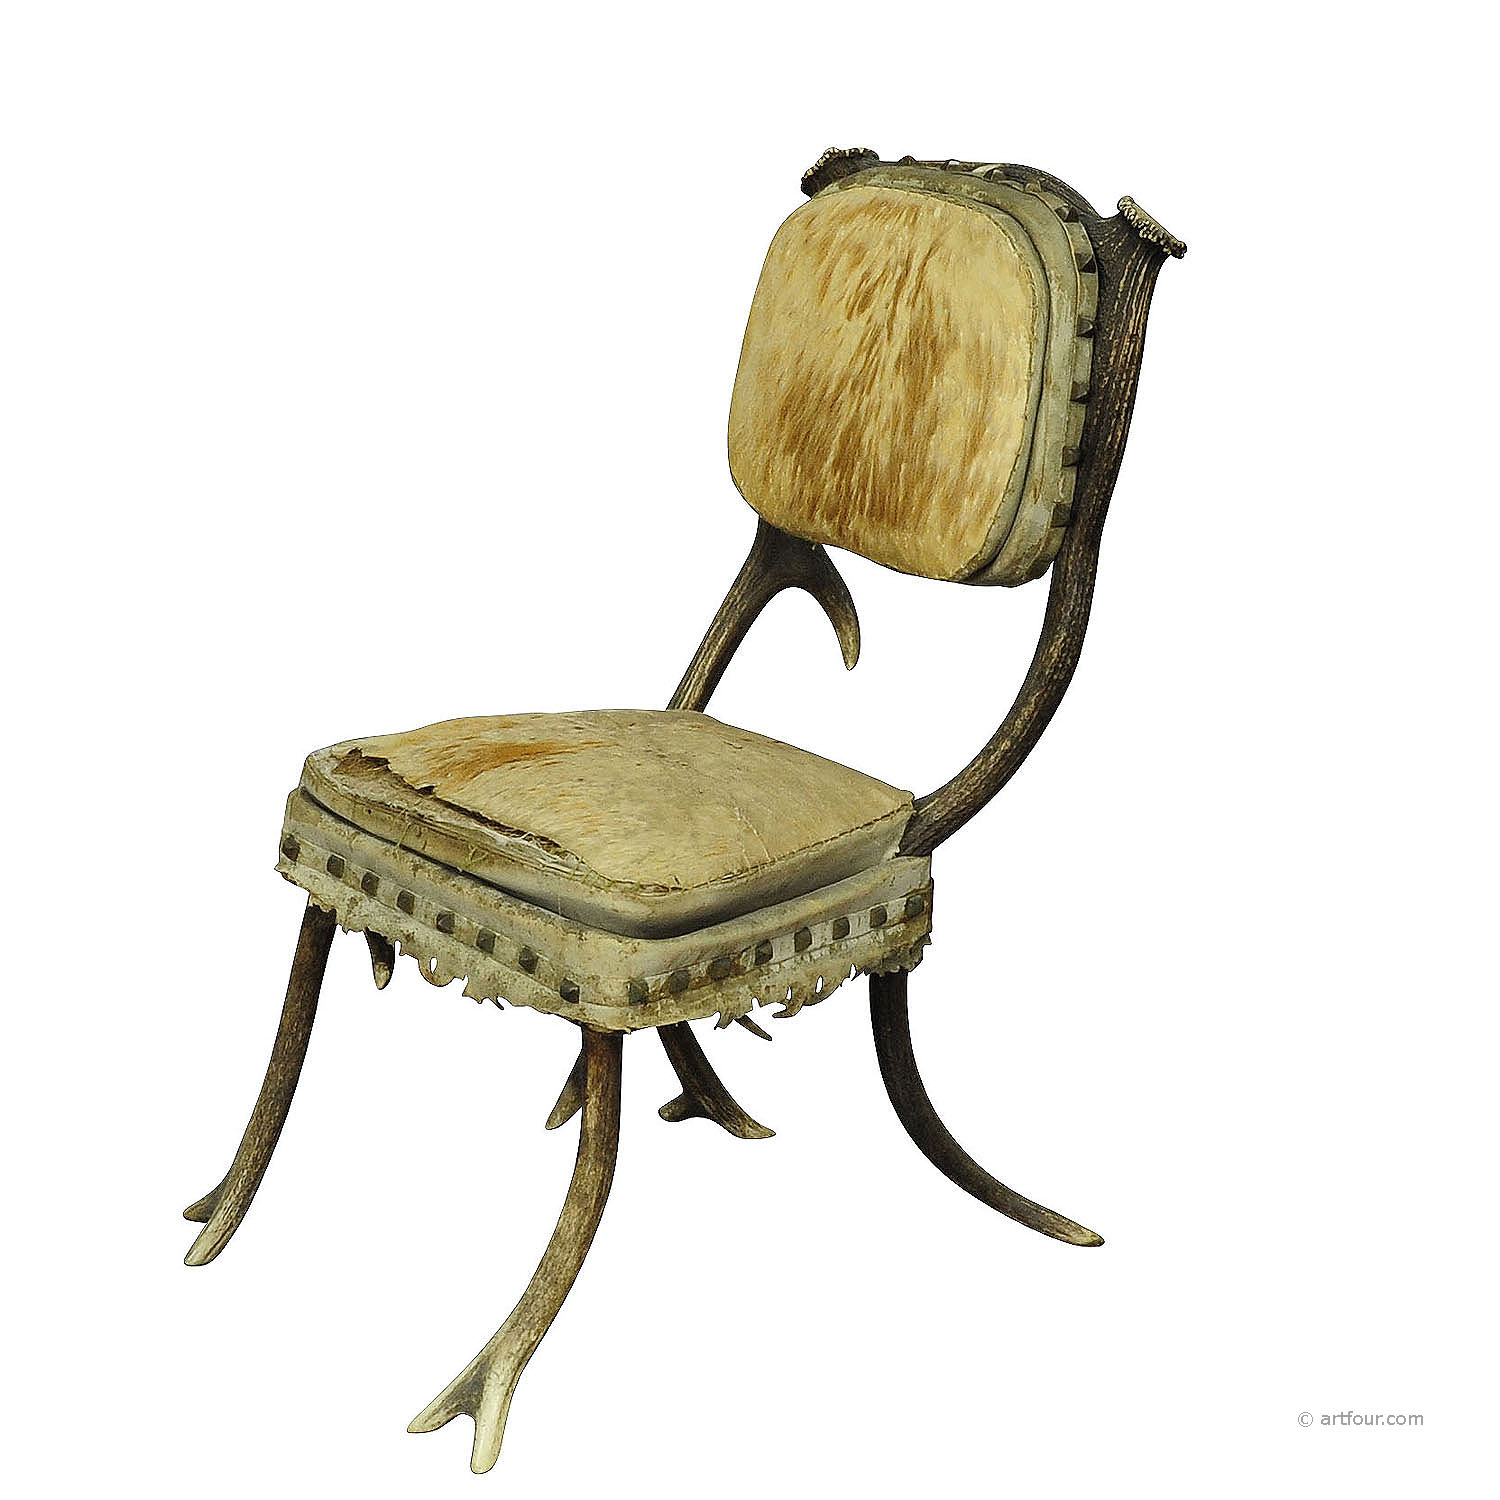 a rare antique antler chair mid 19th century